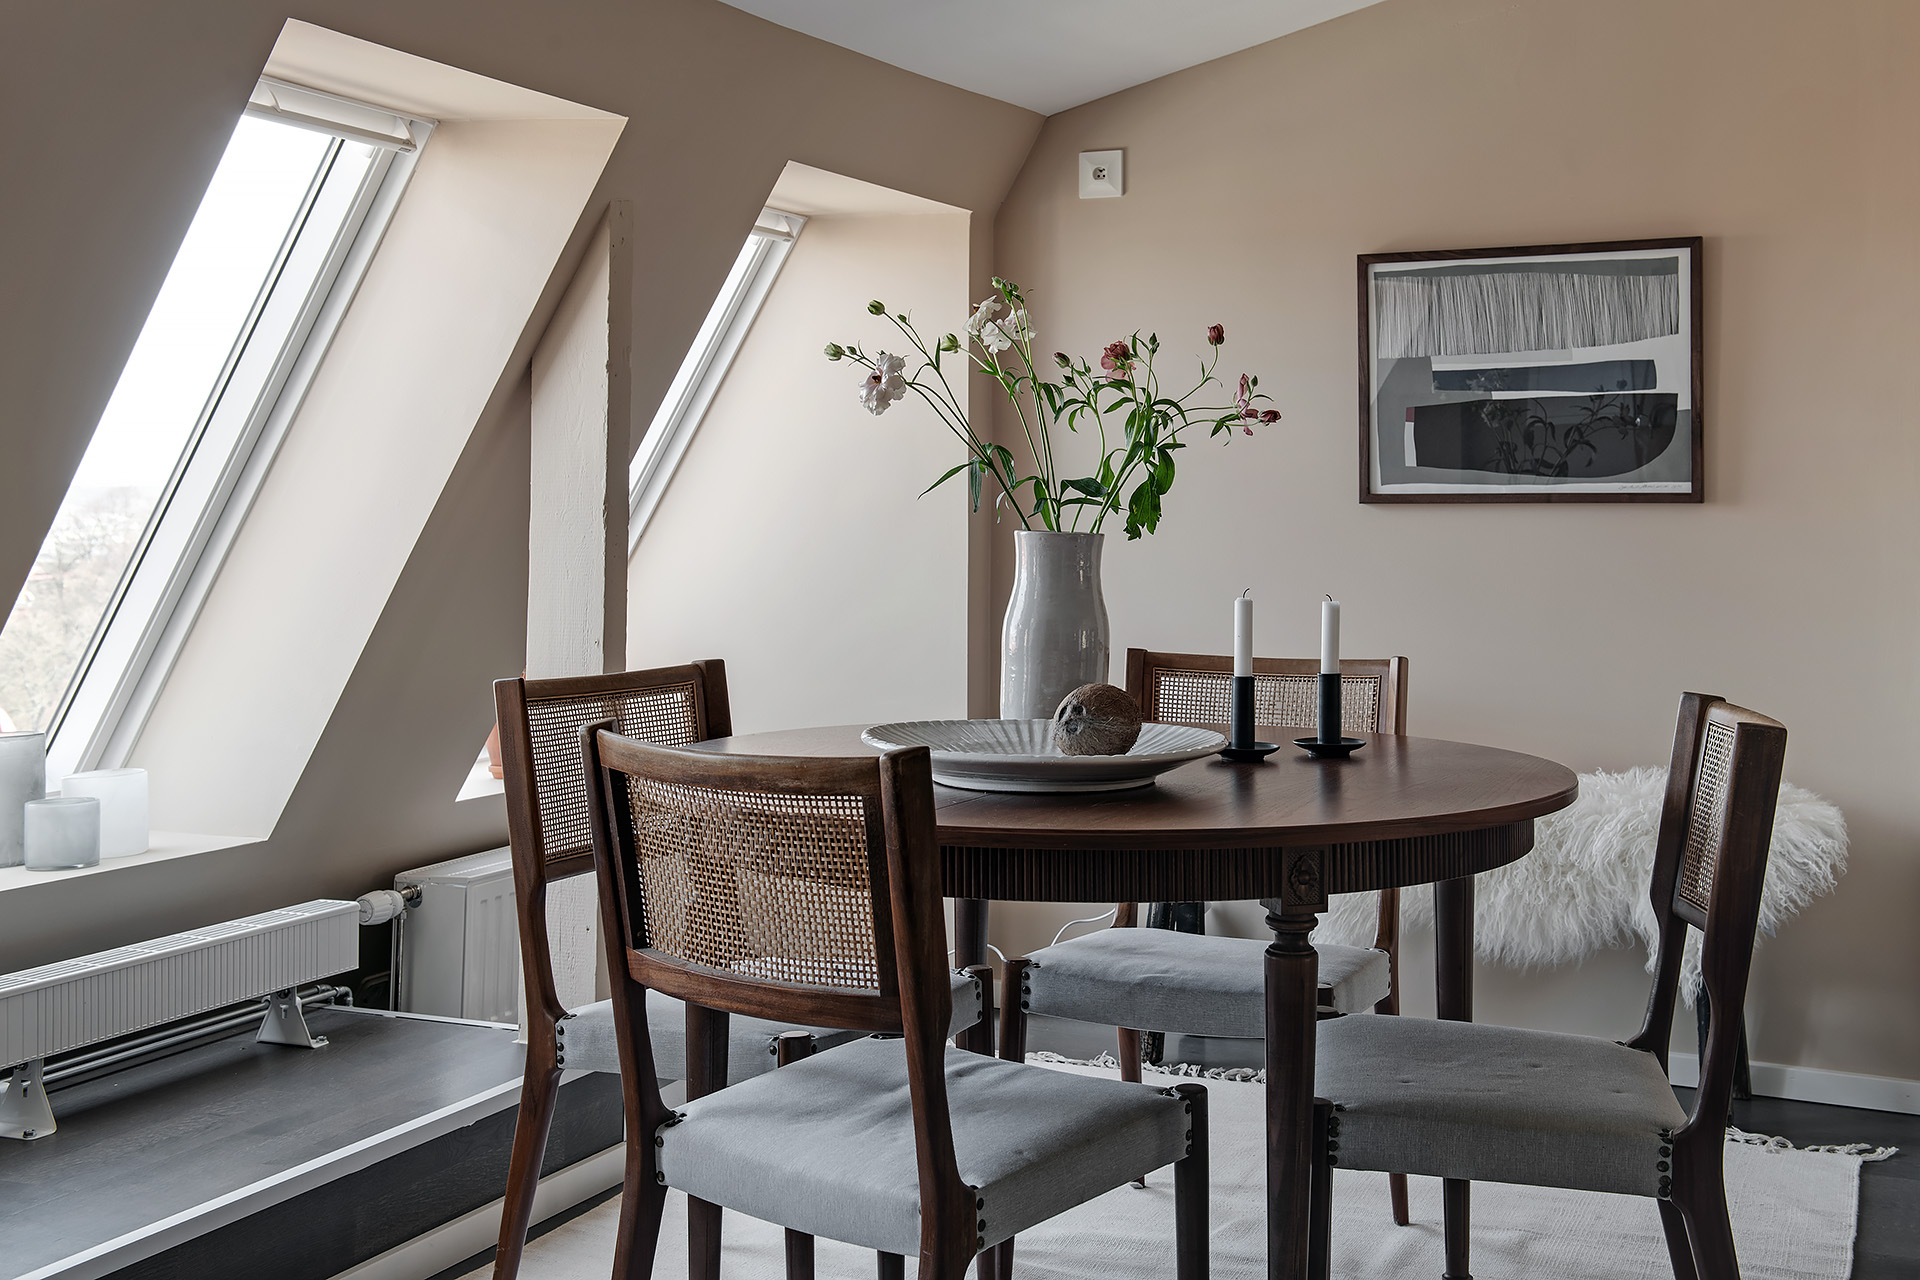 Beautiful attic in soft colors with touches of vintage / via @kronekern